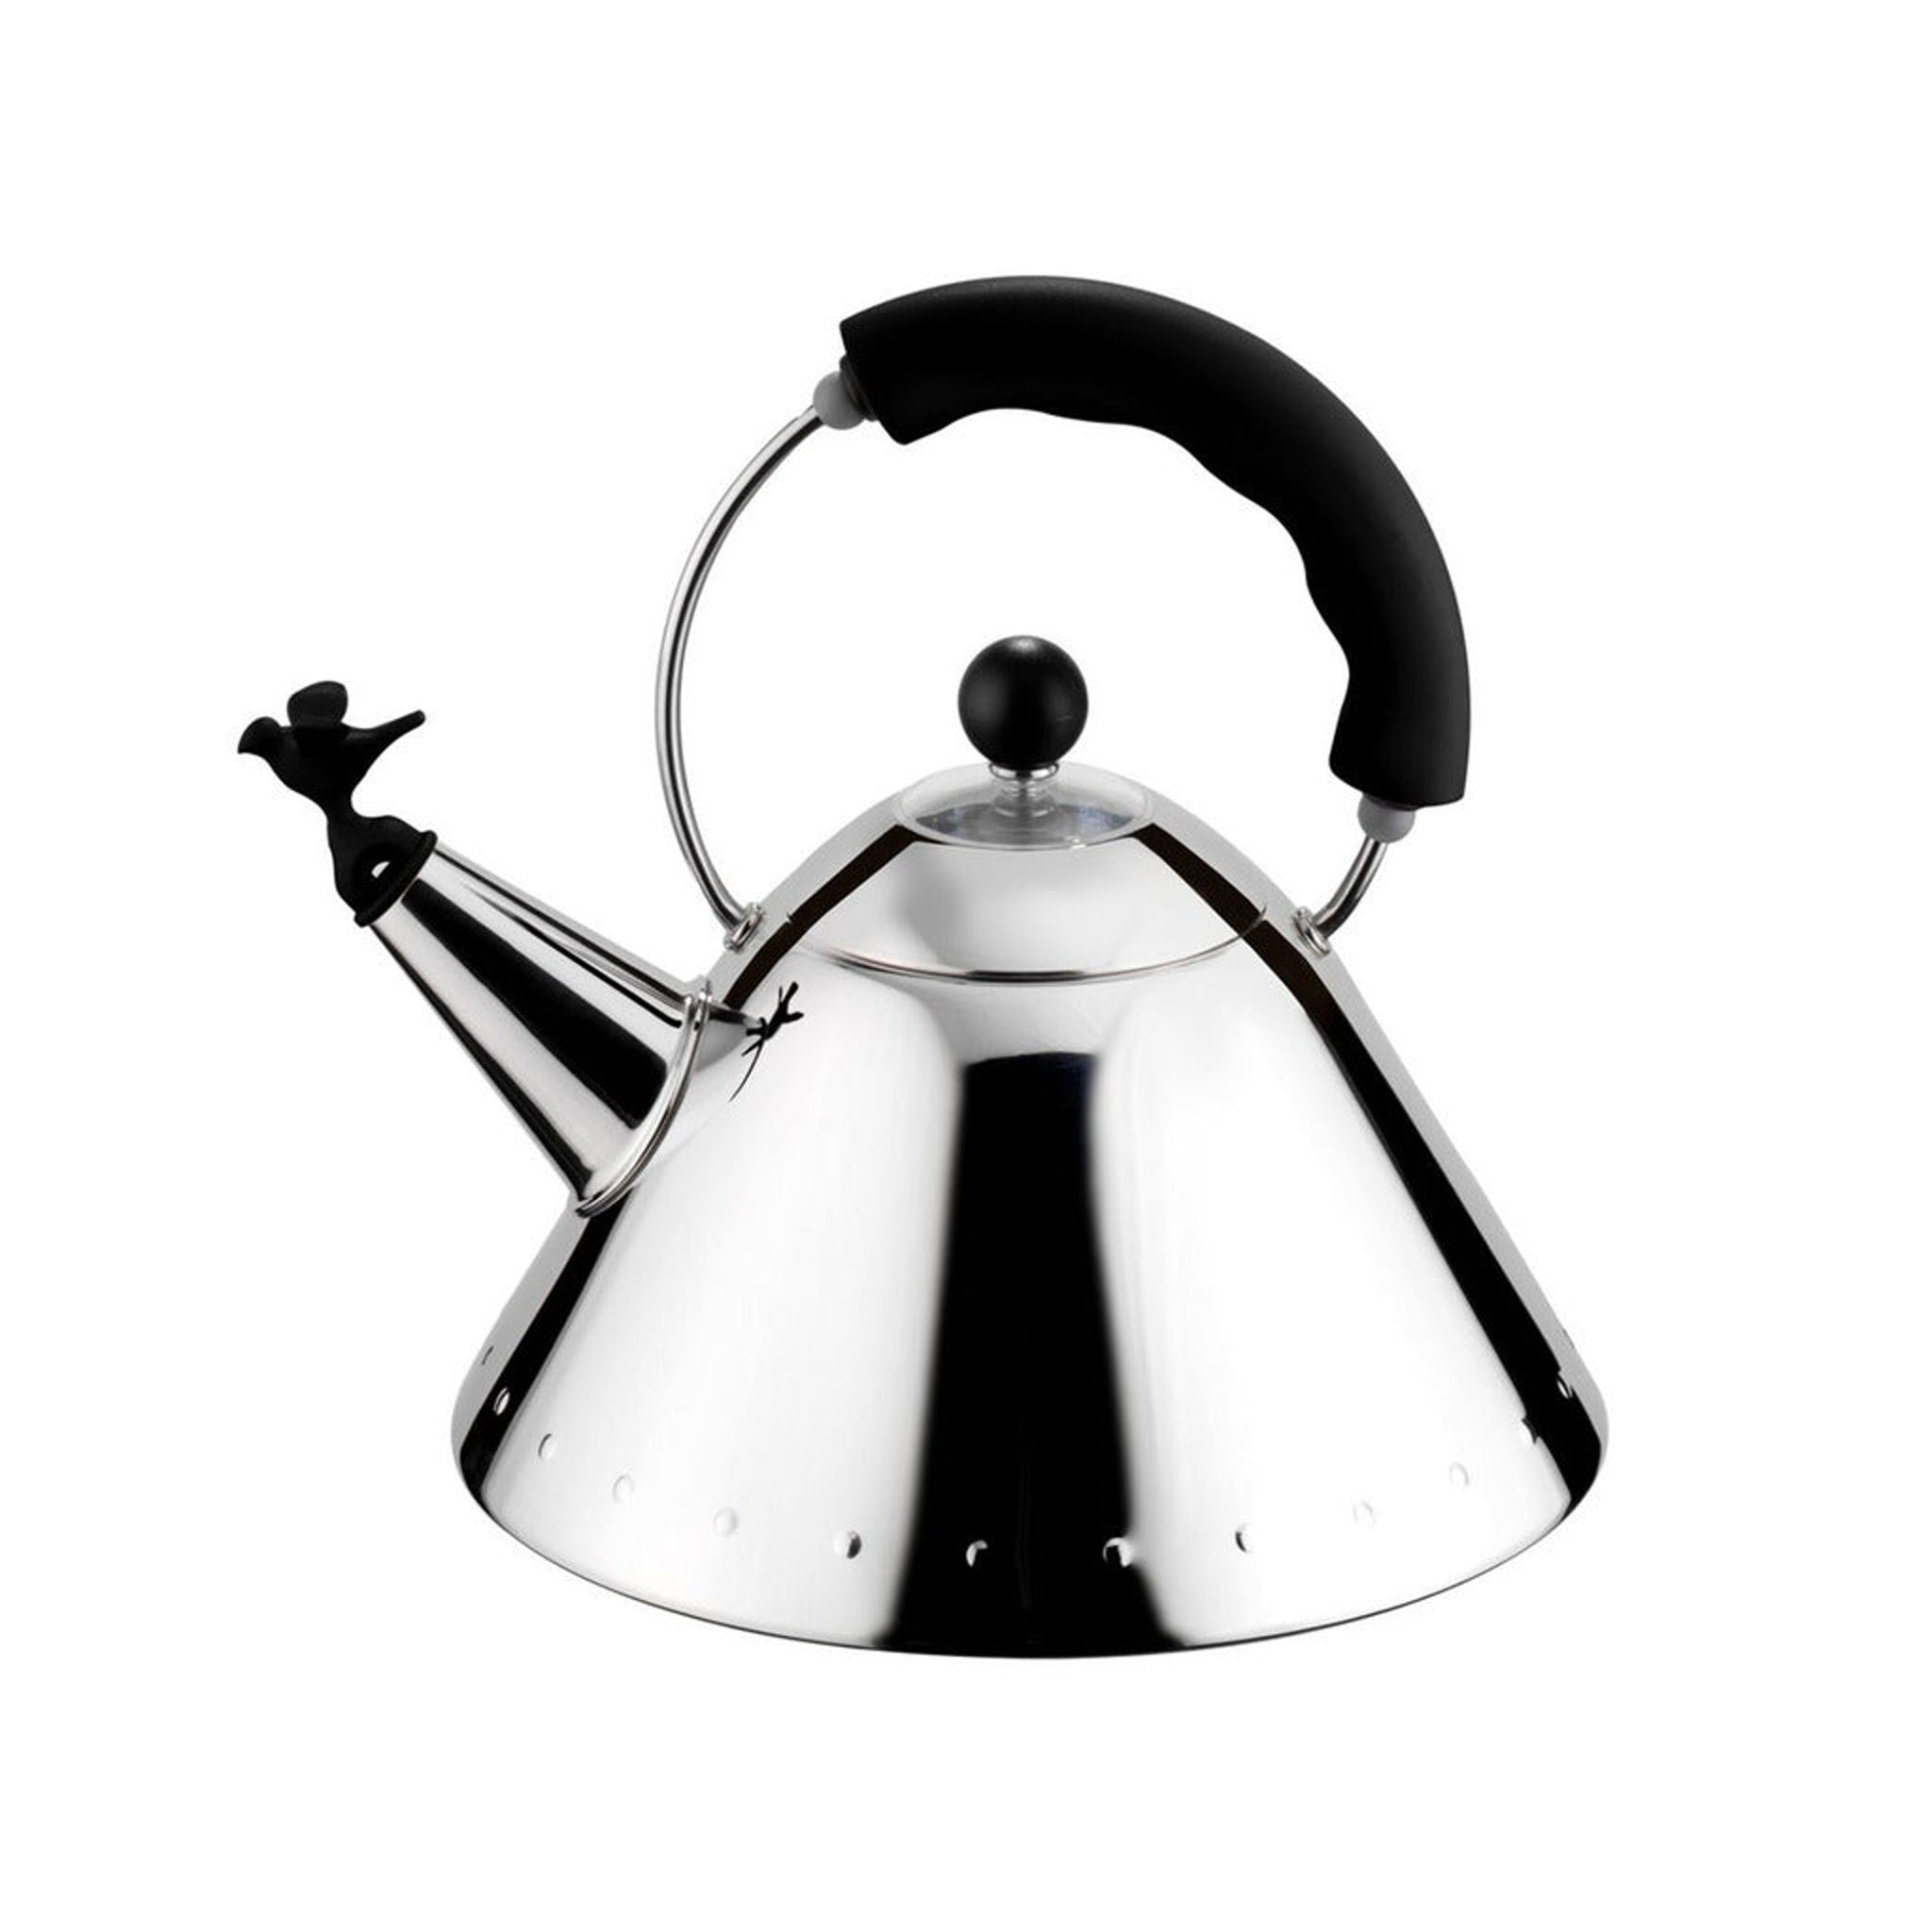 Bird Kettle by Michael Graves for Alessi